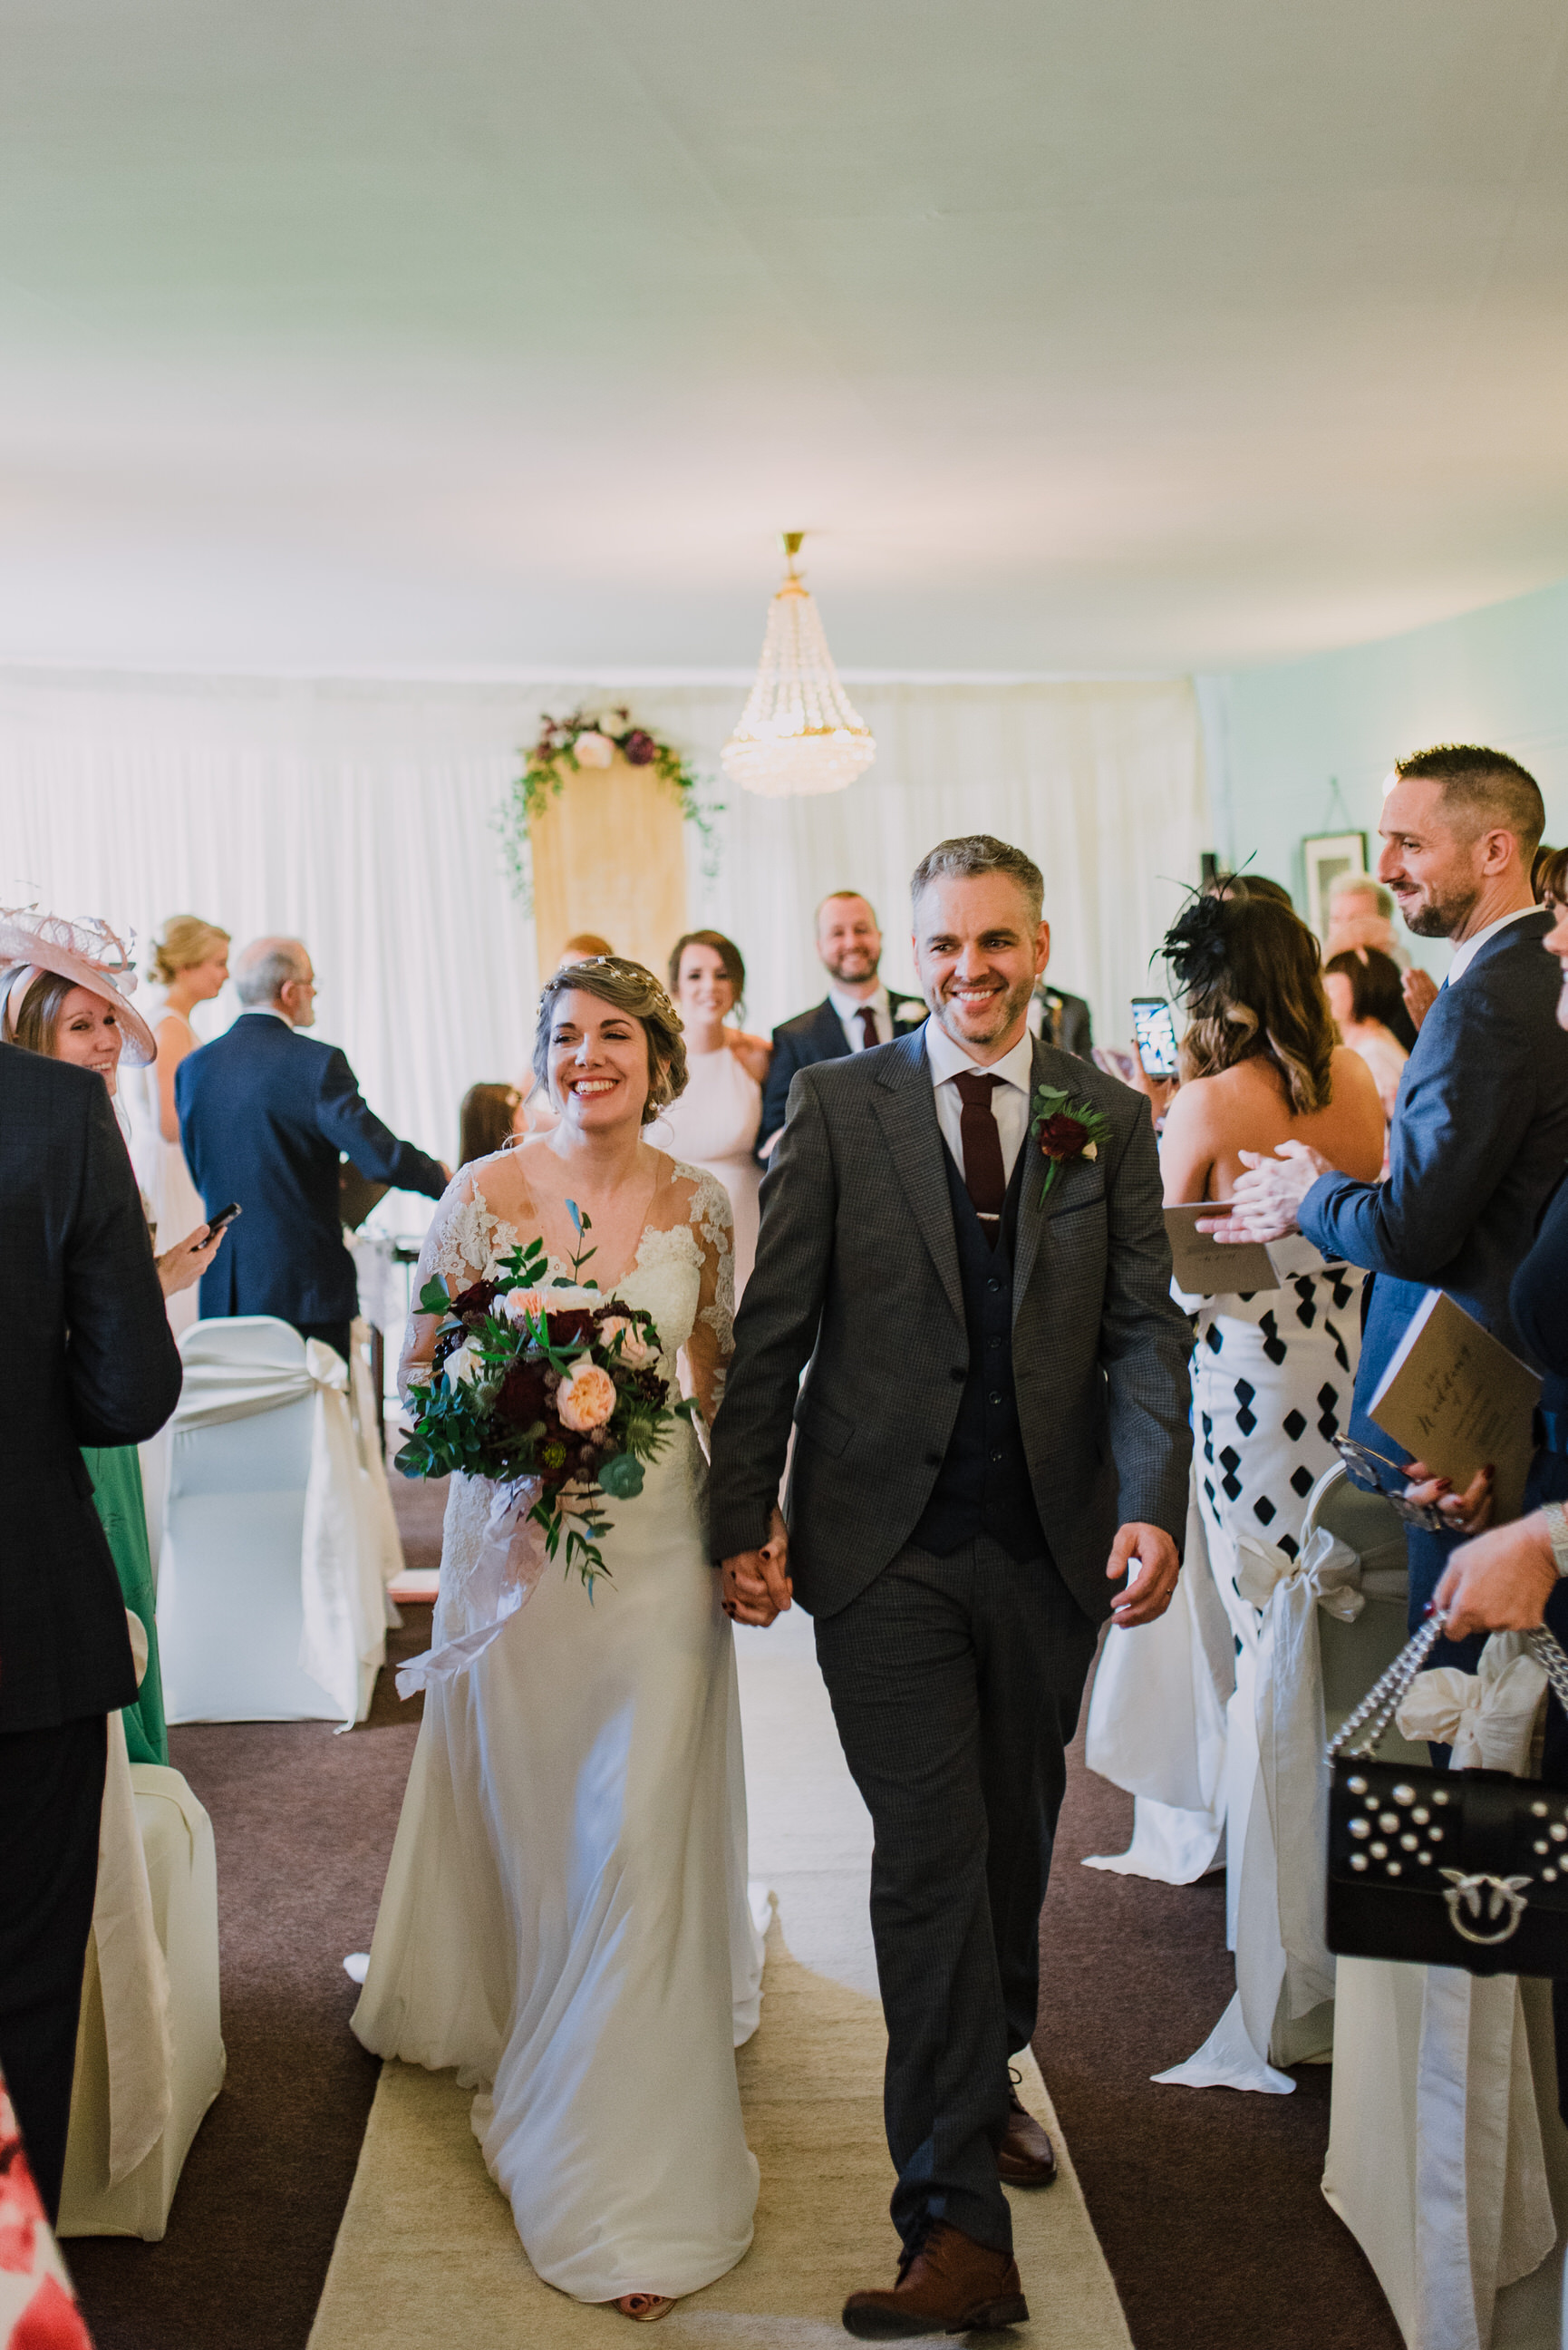 lissanoure castle wedding, northern ireland wedding photographer, romantic northern irish wedding venue, castle wedding ireland, natural wedding photography ni (66).jpg